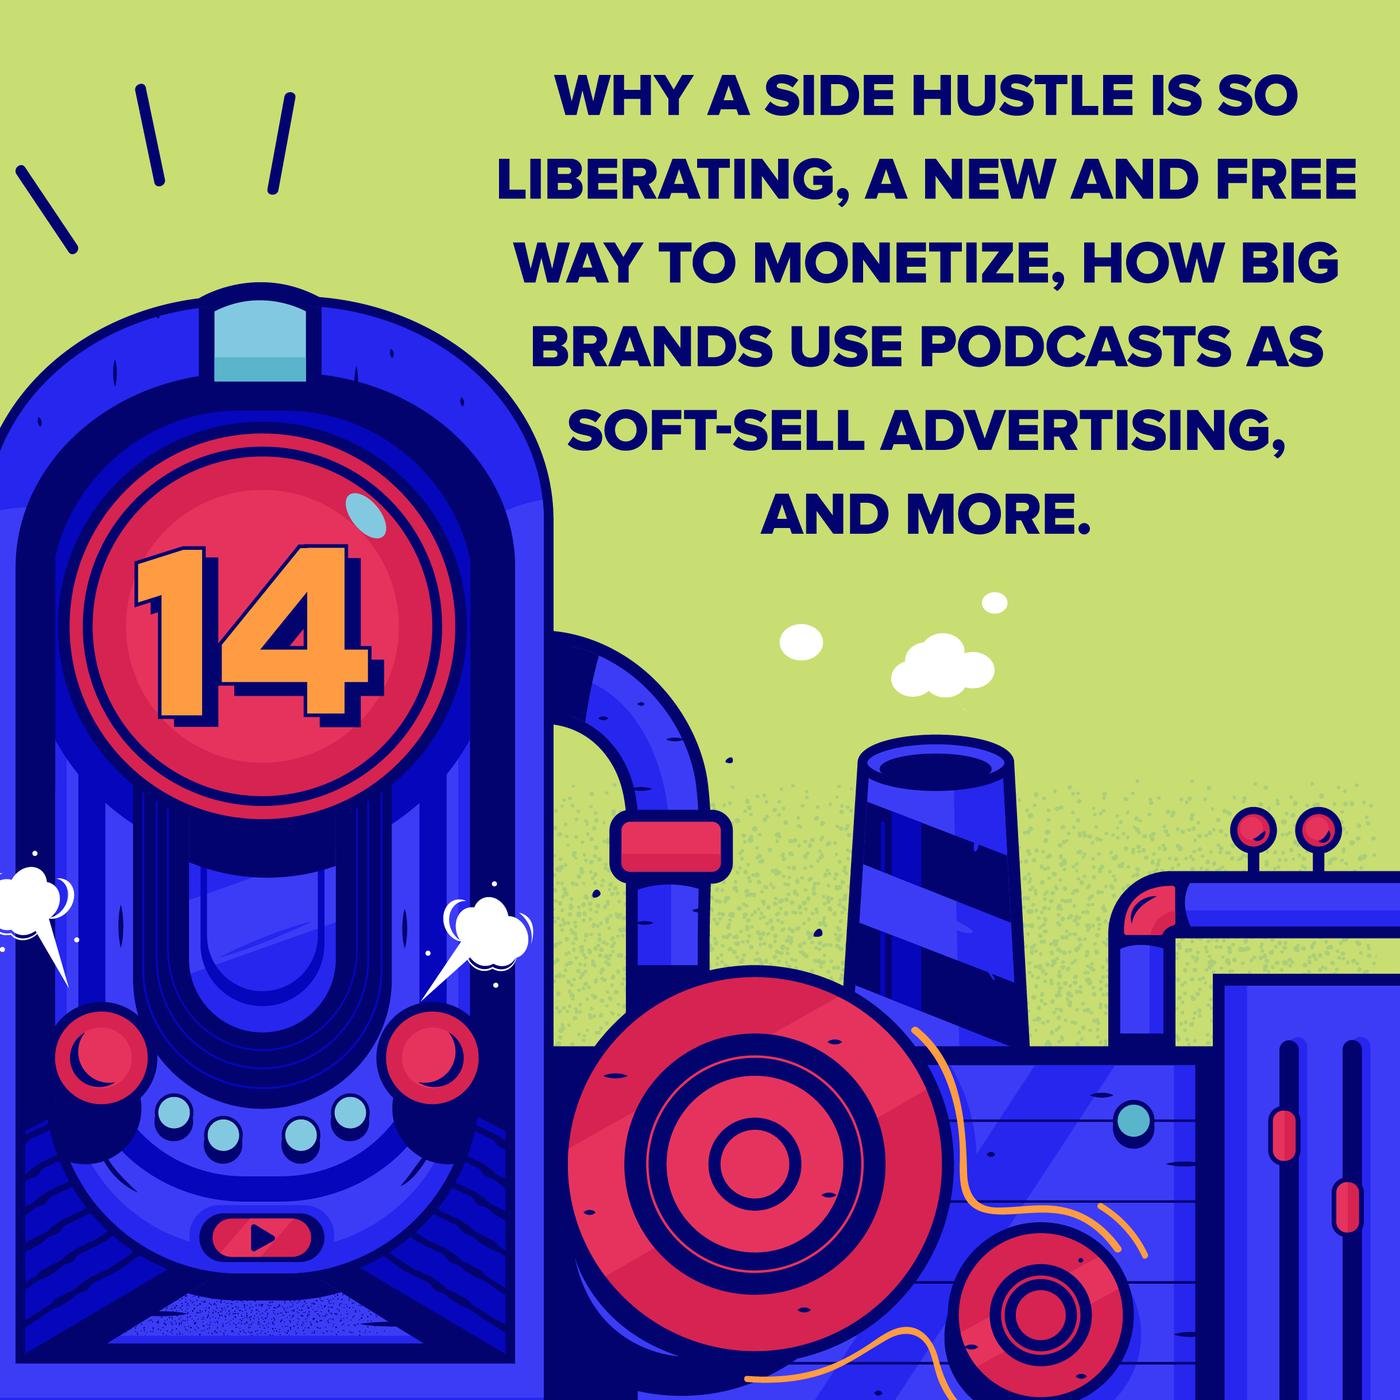 Episode 14 (TWIP) - Why a Side Hustle is so Liberating, a New and Free Way to Monetize, How Big Brands Use Podcasts as Soft-Sell Advertising, and More.